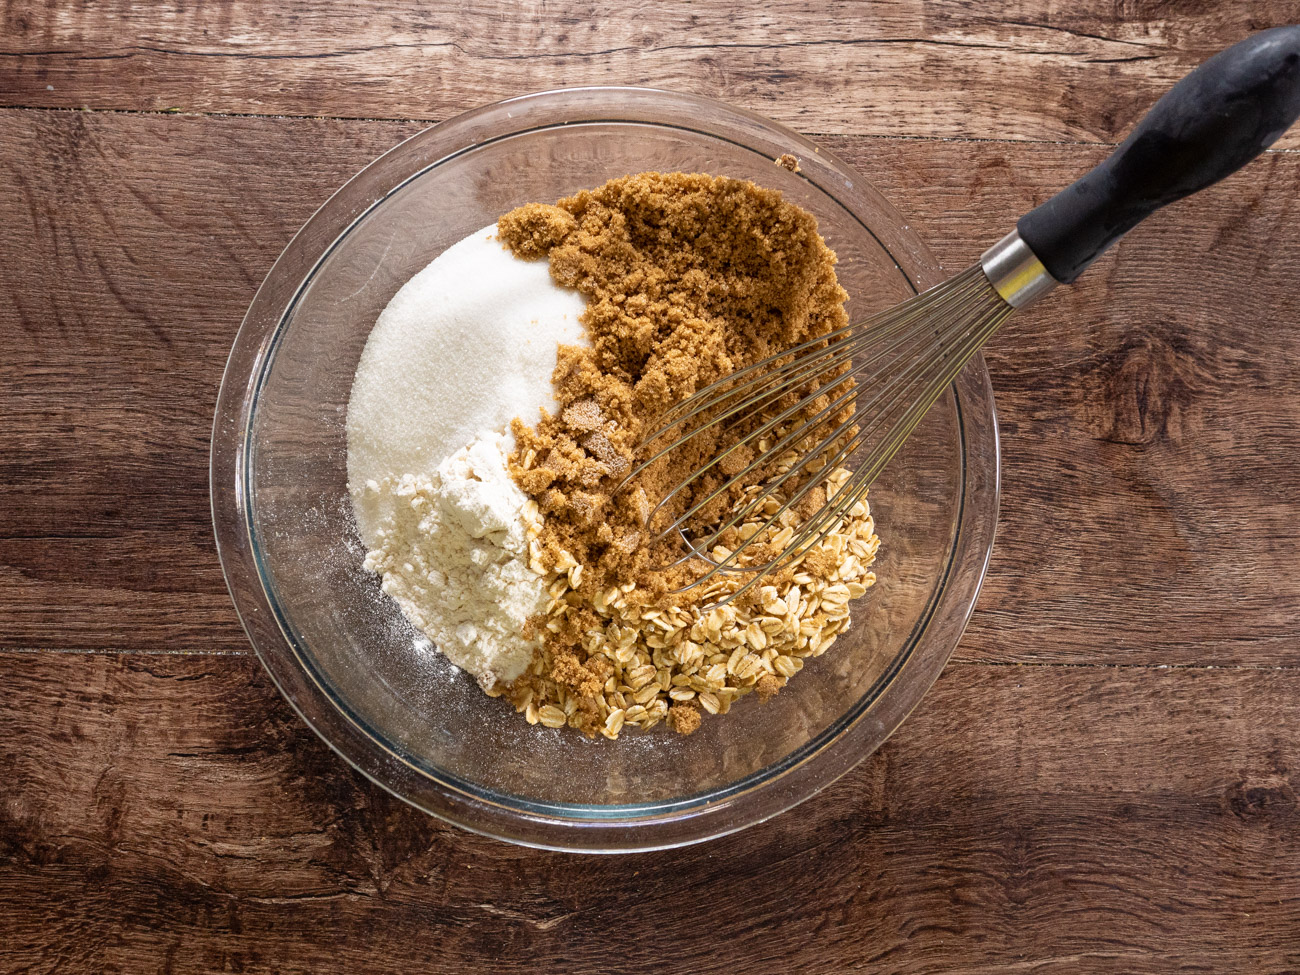 Combine flour, oats, salt, cinnamon, nutmeg, and baking soda in a large bowl. Mix in sugar and light brown sugar.